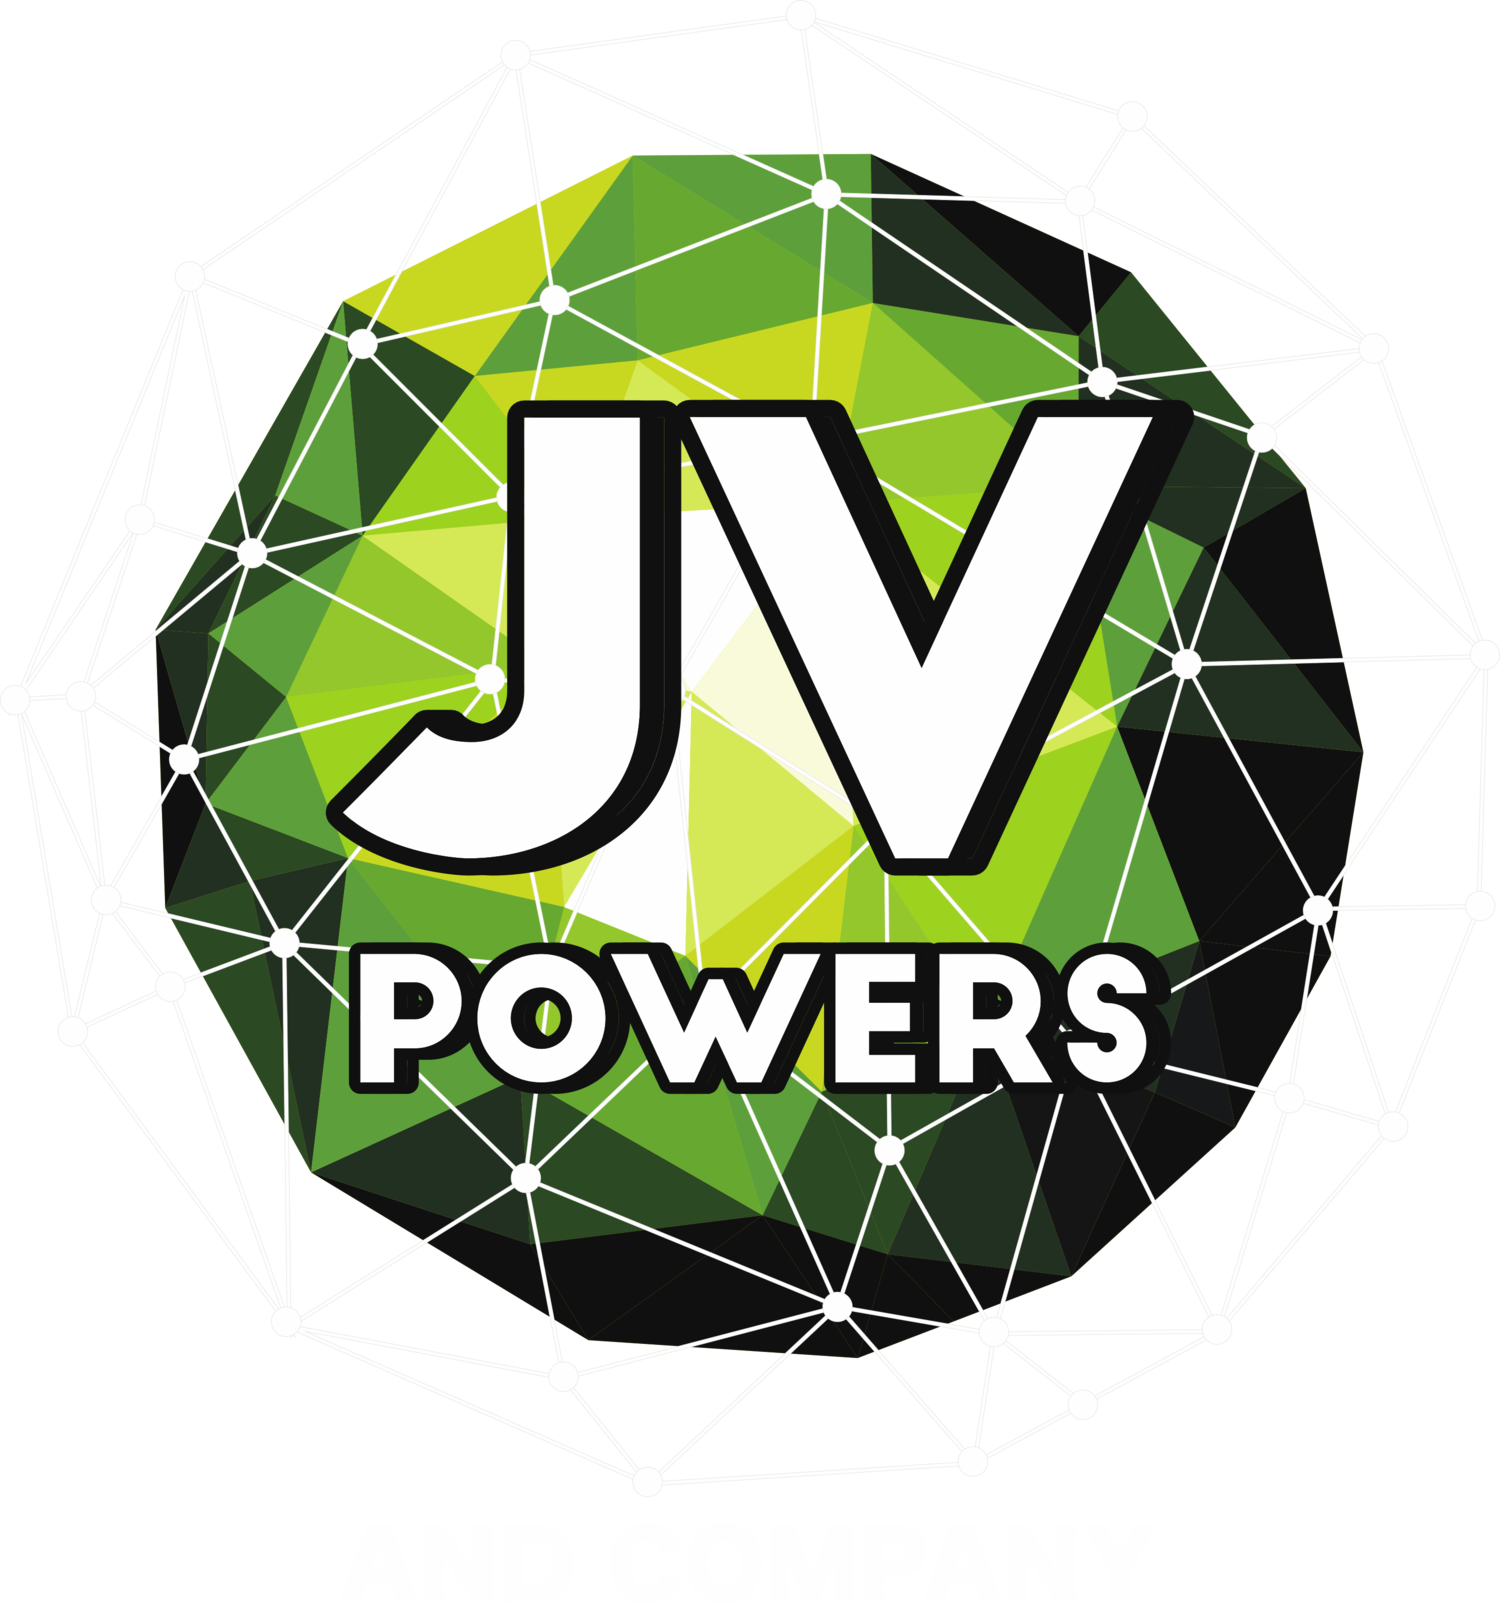 JV Powers - 3D Printing Pioneers